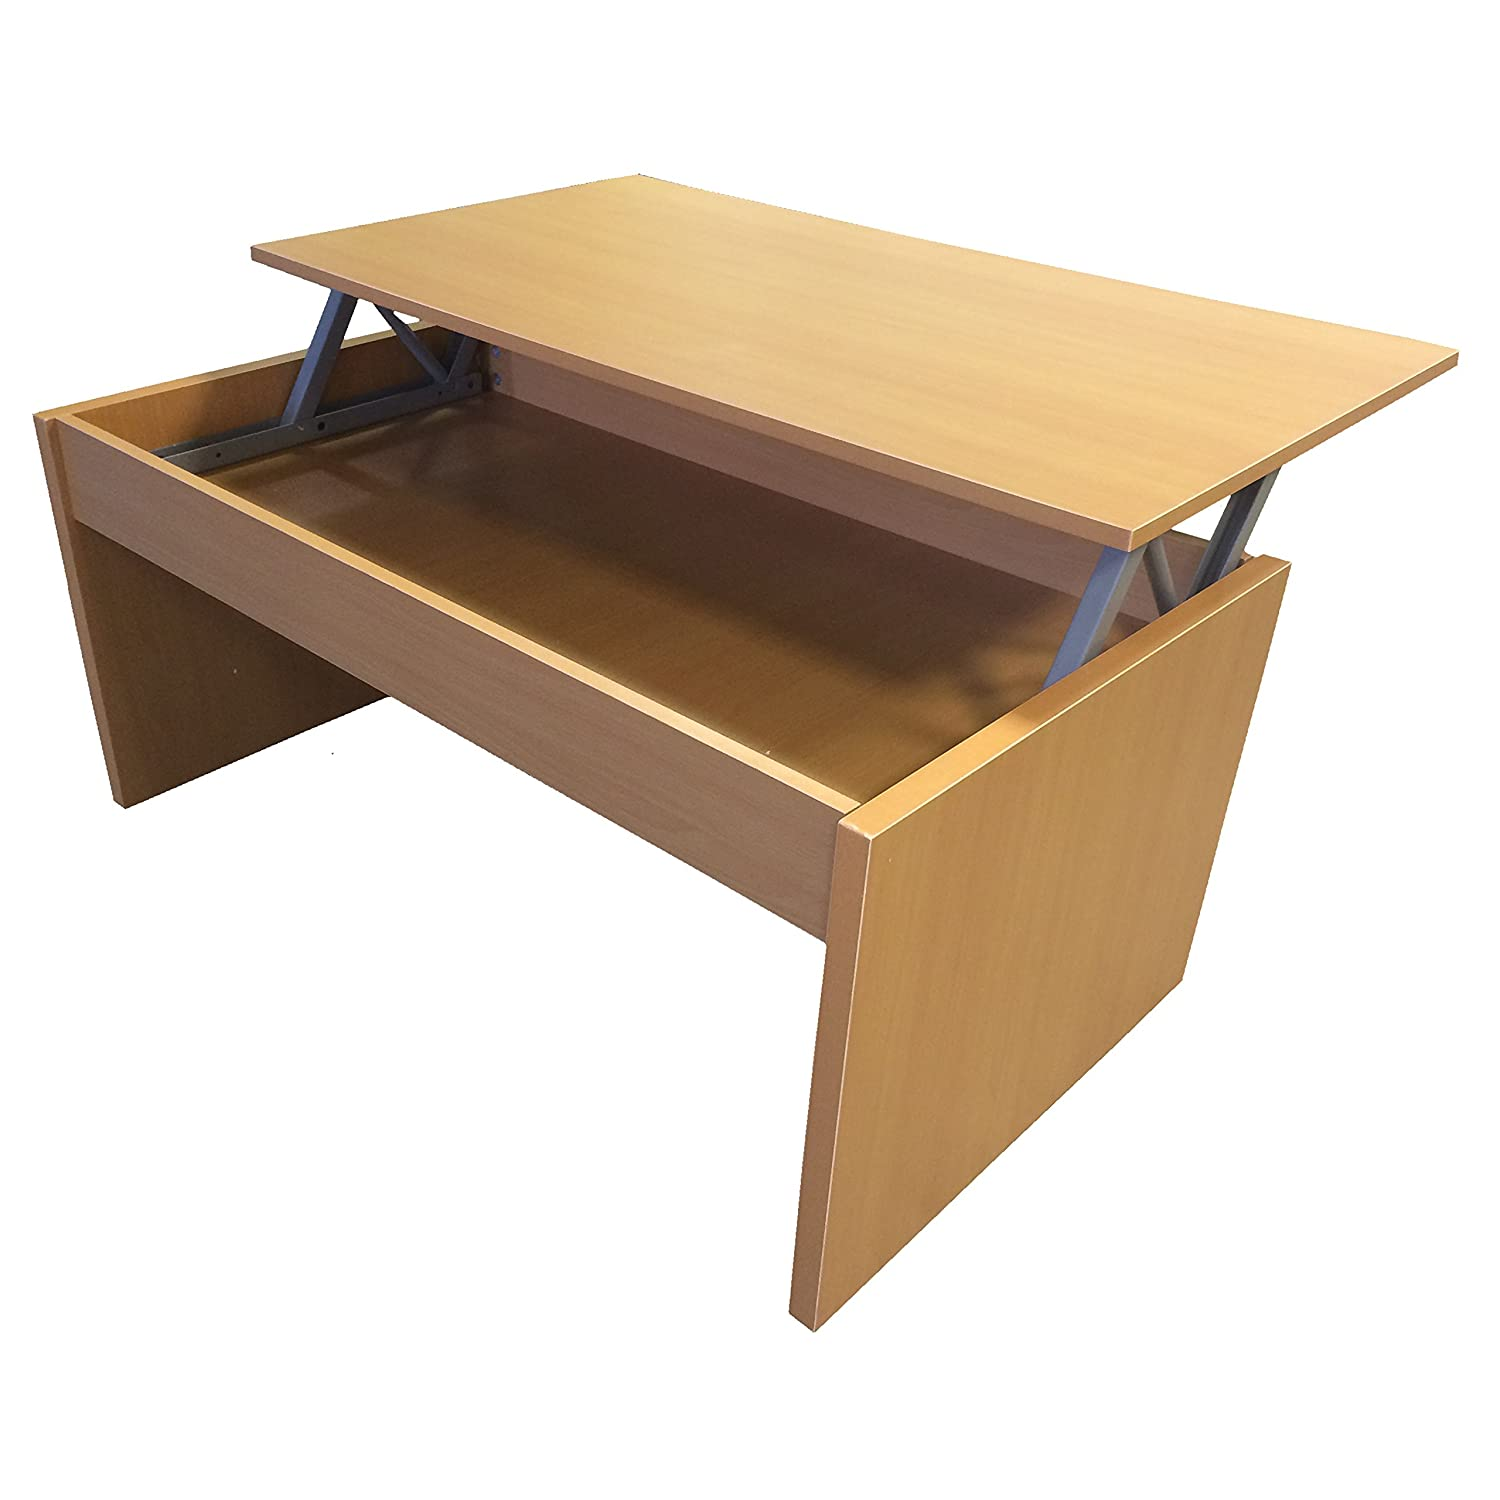 Redstone Beech Coffee Table Lift Top with Storage Amazon